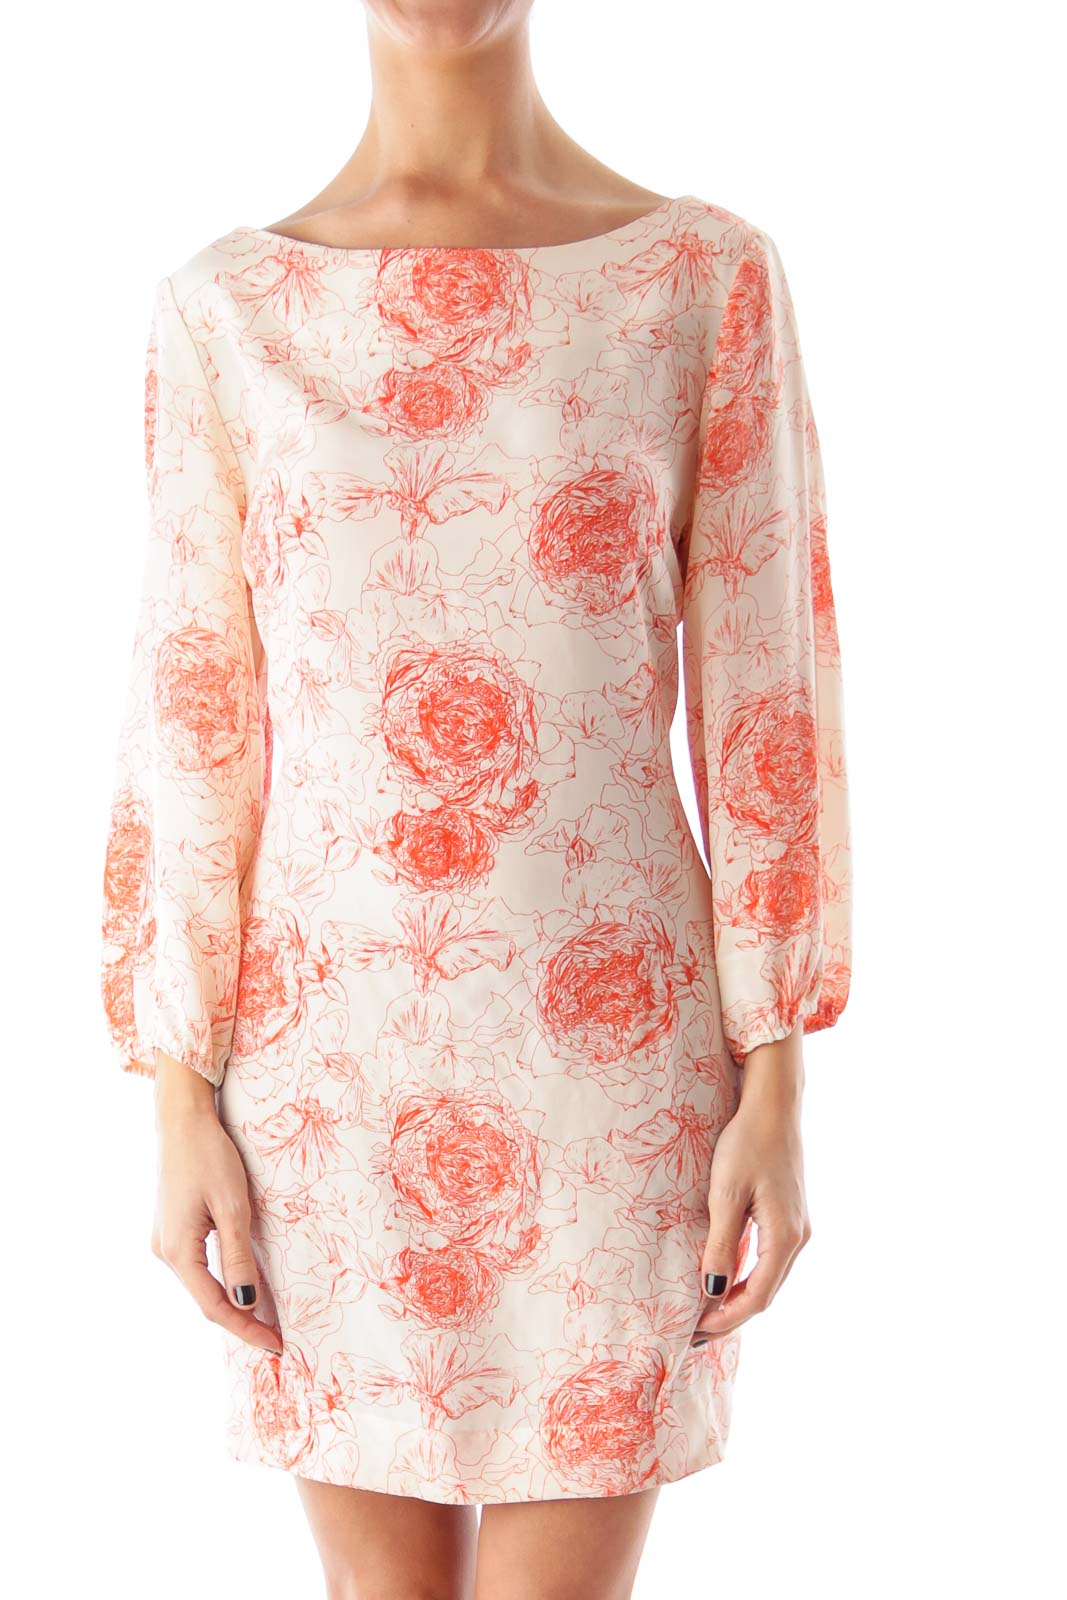 Beige & Orange Flower Print Shift Dress Front